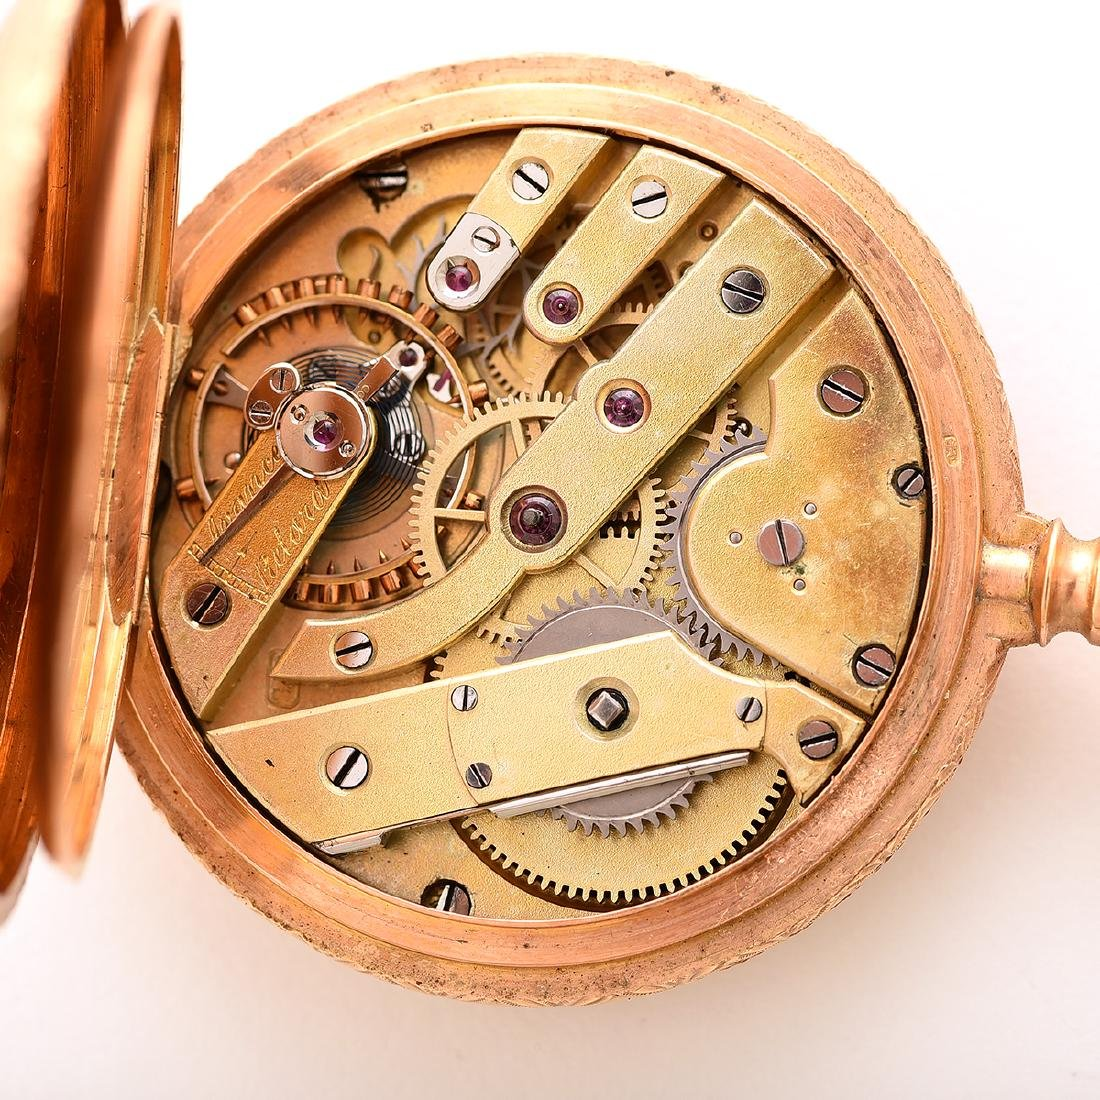 18k Yellow Gold Pocket Watch. - 6